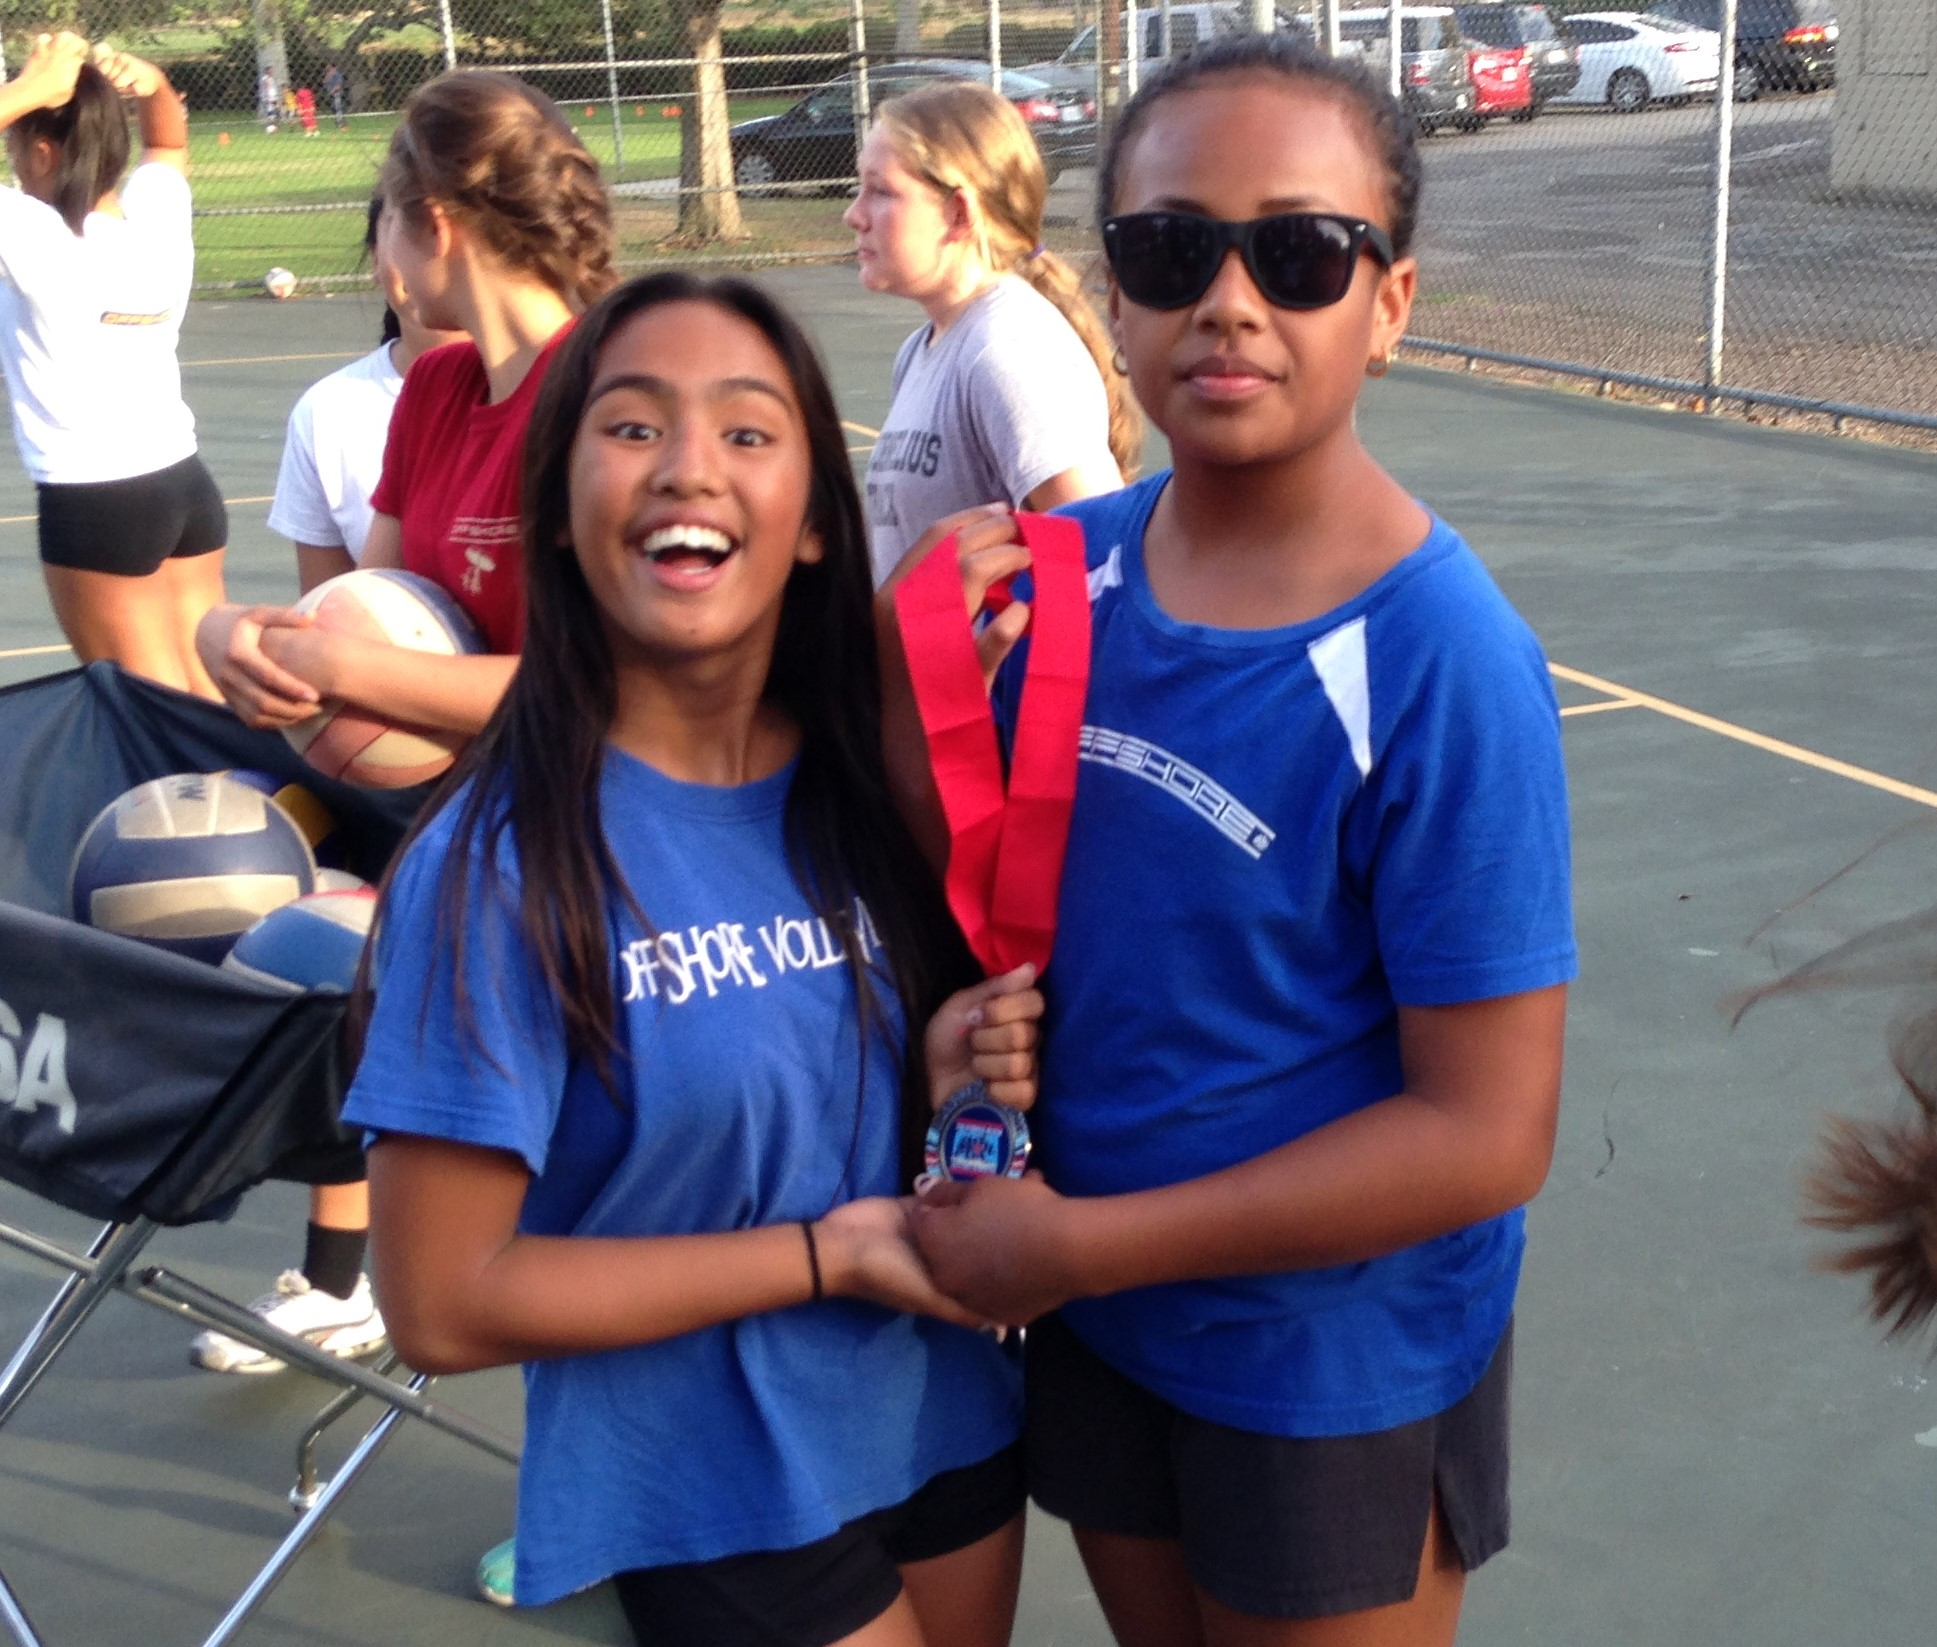 Victoria Verceles (left) and Olivia Muriel (right) showing off their beachhardware